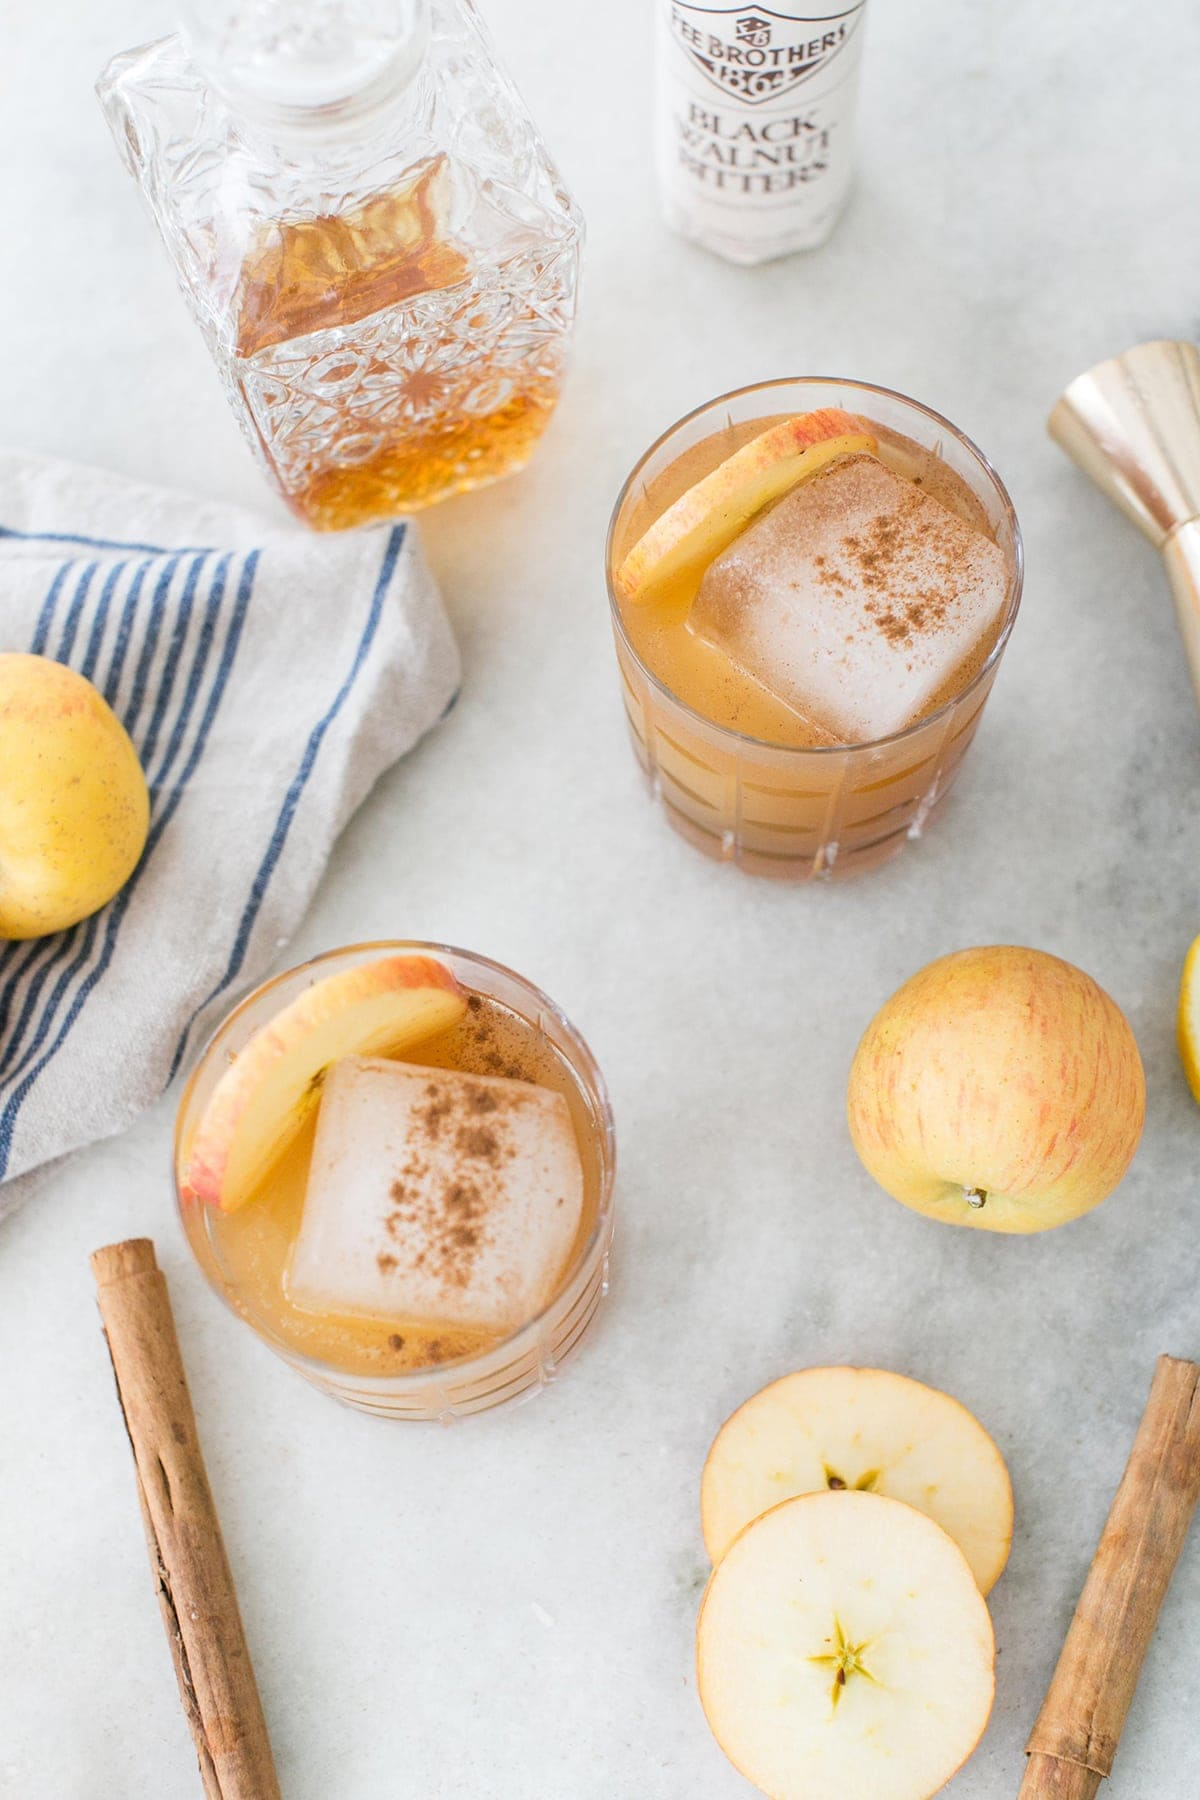 Apples and Tequila Cocktail